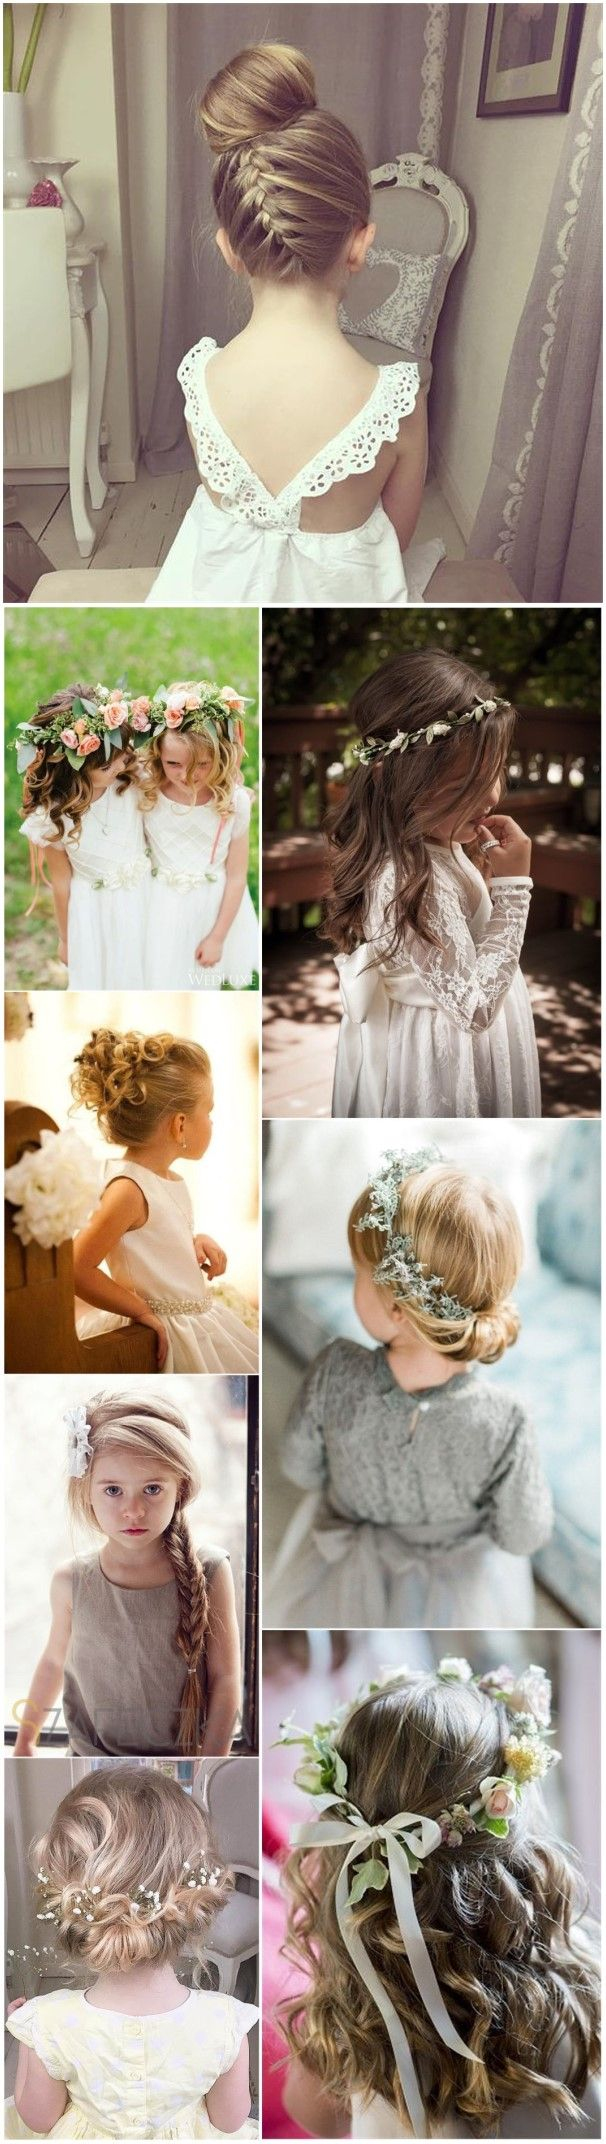 best may images on pinterest wedding ideas bridal